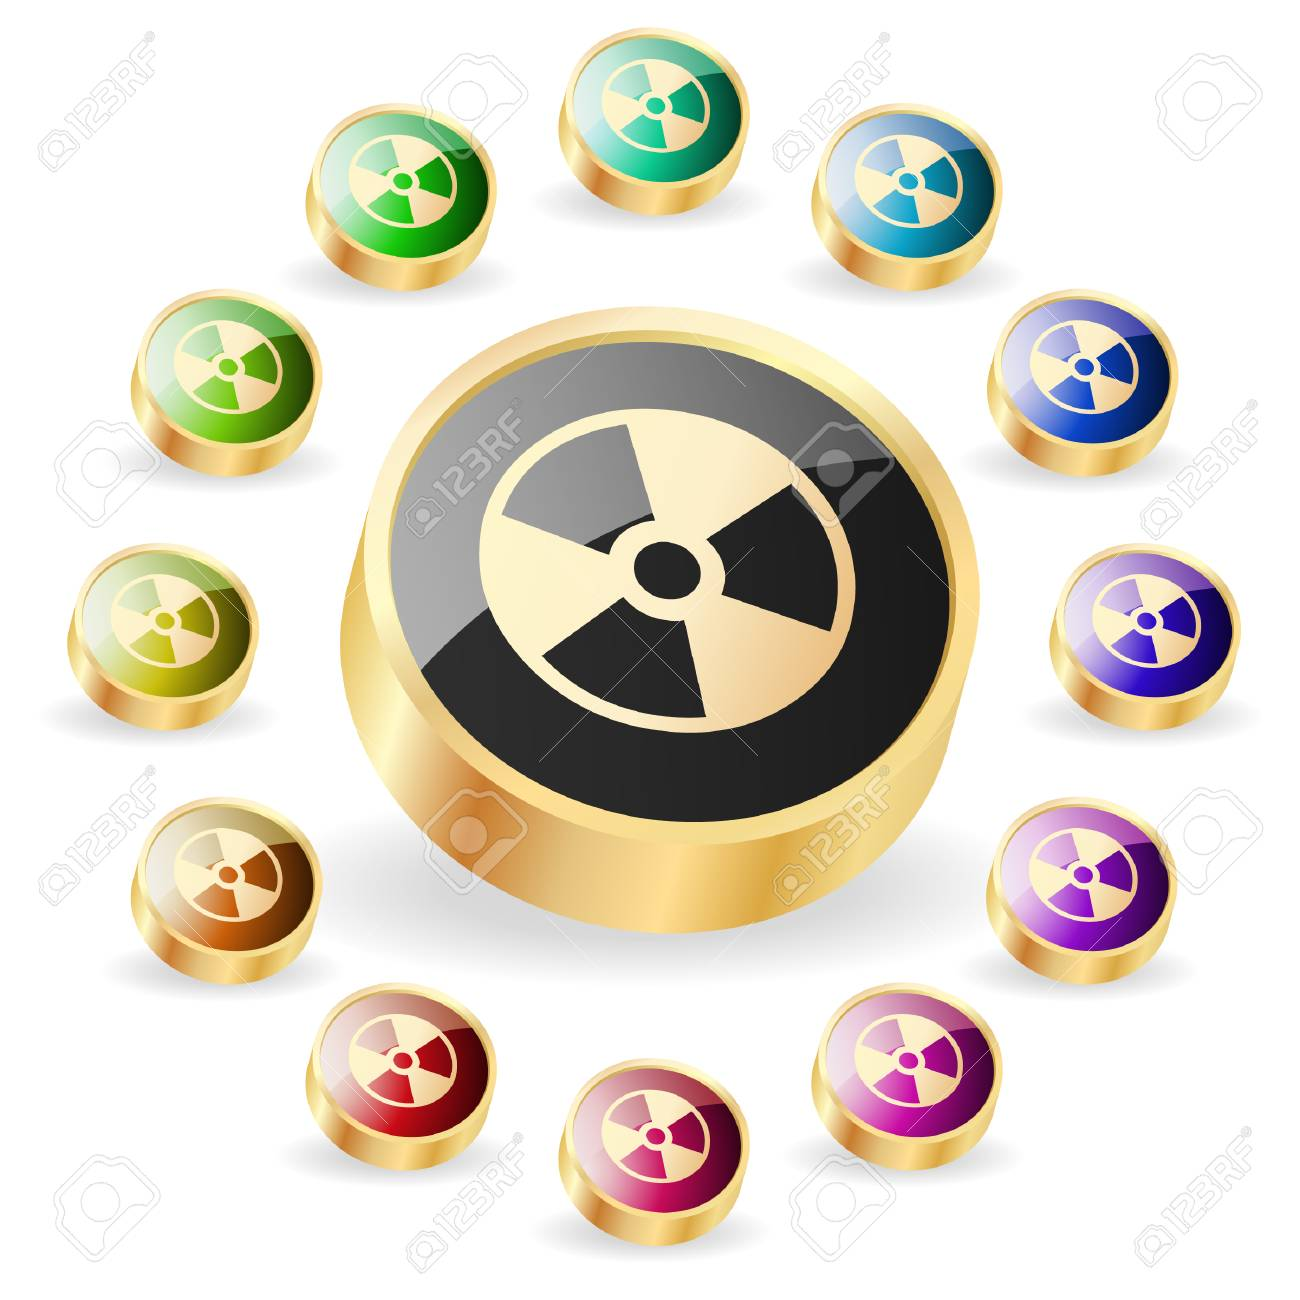 Alert button. Vector set. Stock Vector - 6331845